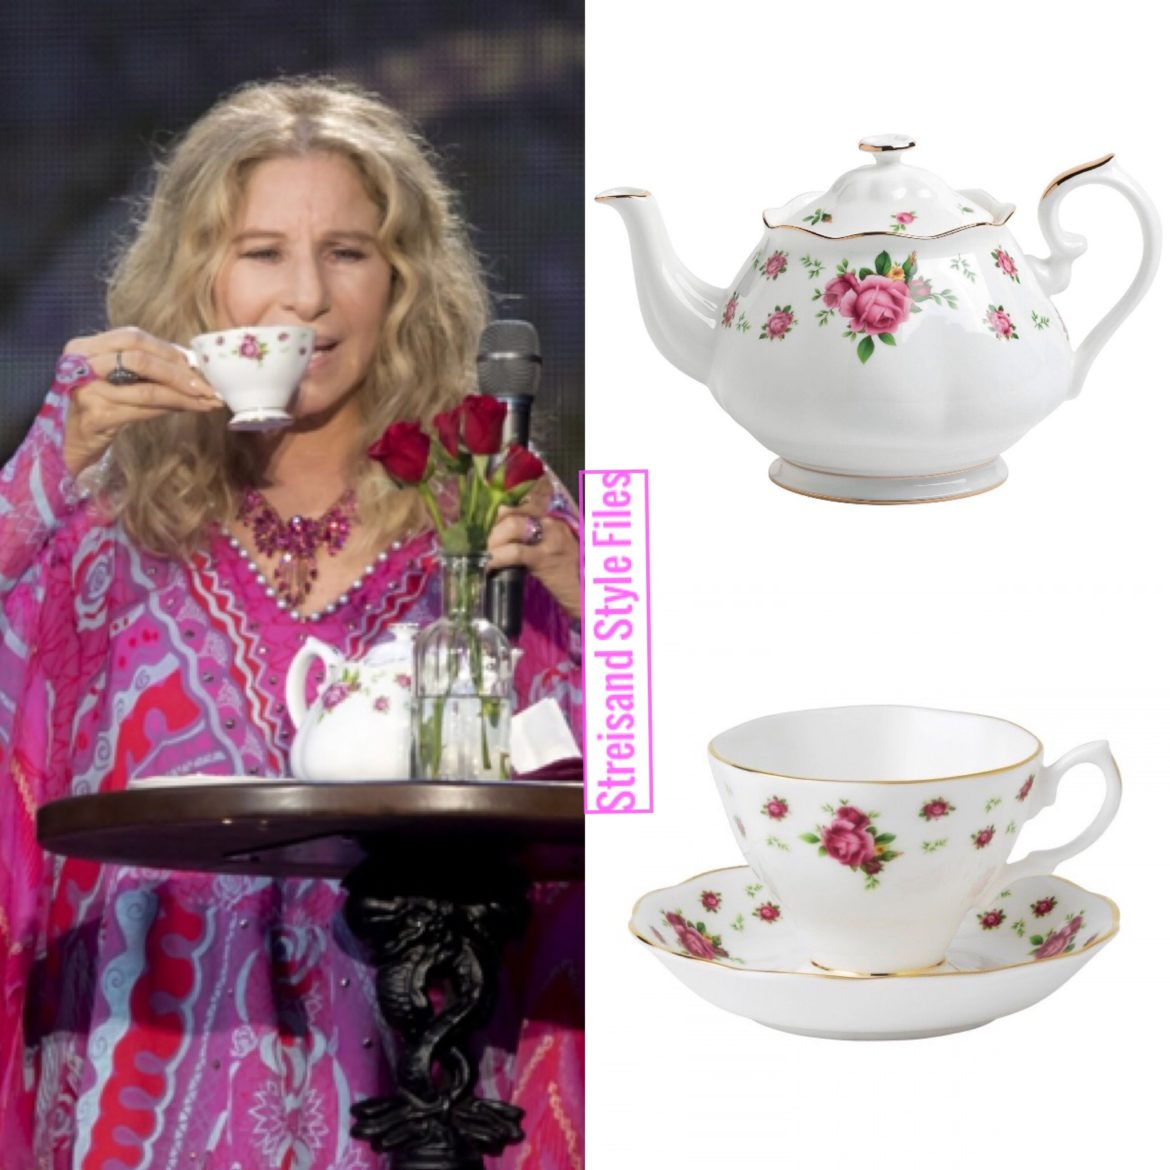 Barbra's Hyde Park Concert Royal Albert Teapot And Teacup